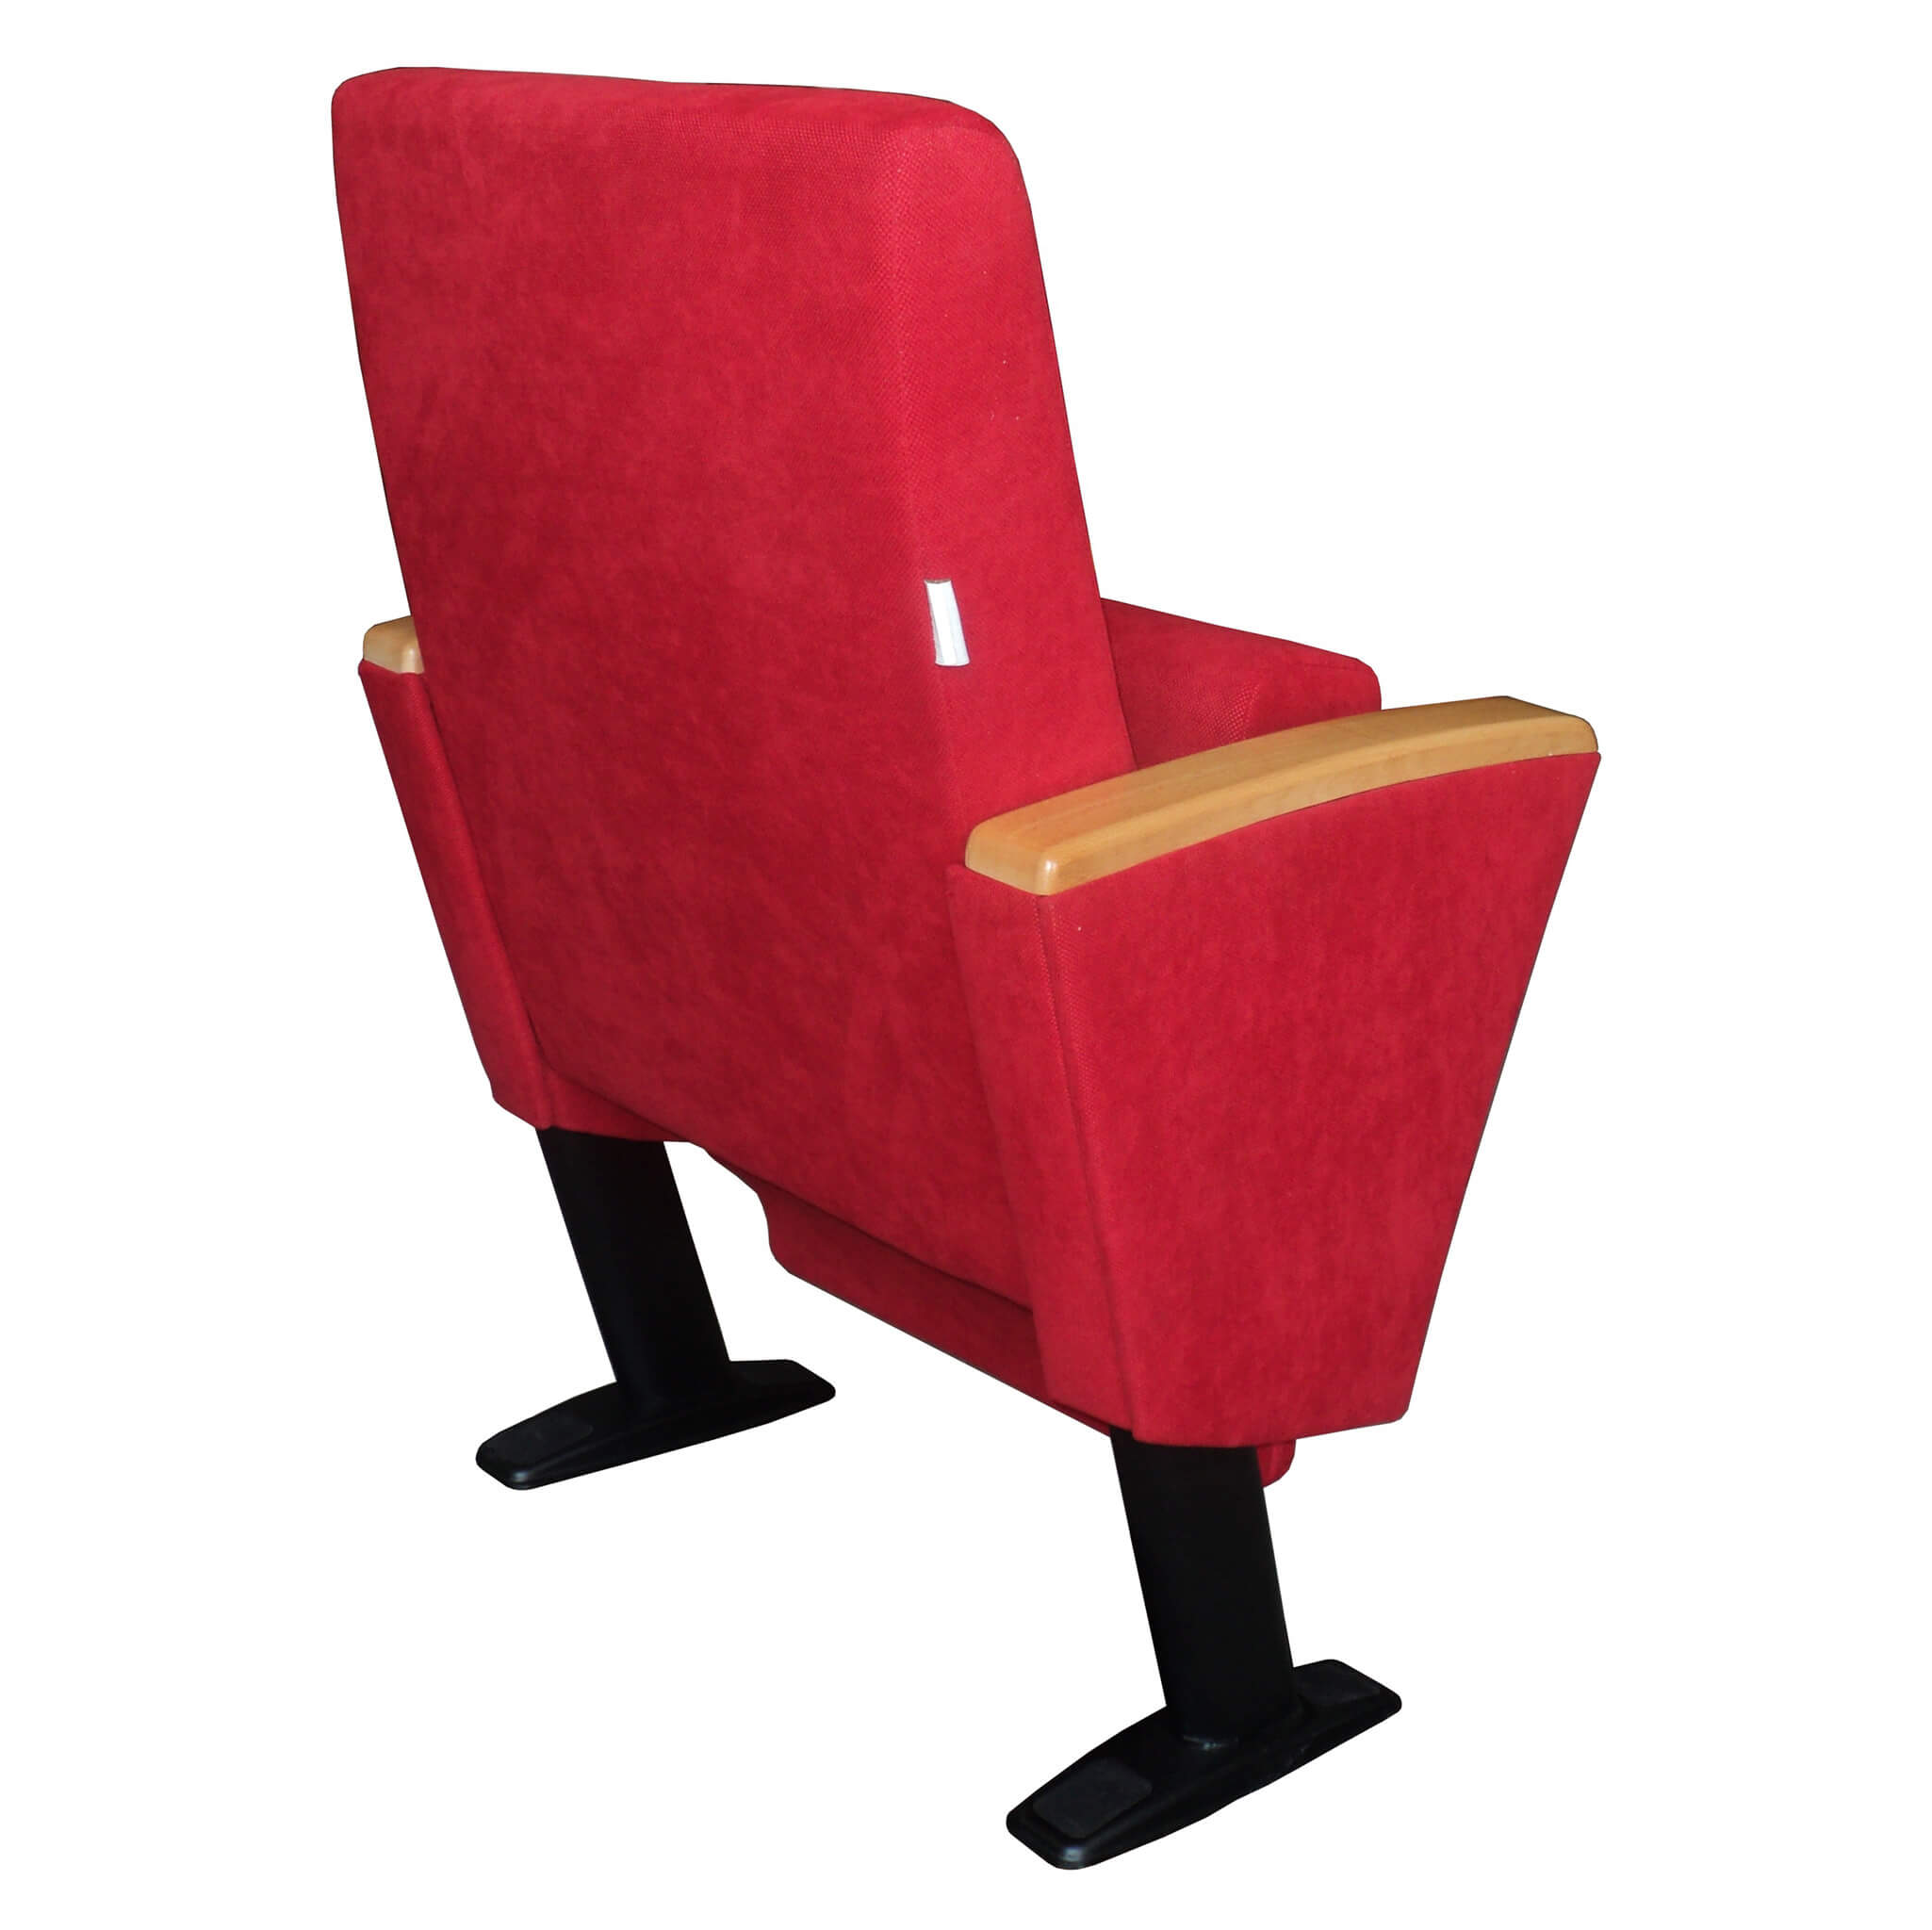 Akon Series - A40 Model - Auditorium, Theater Chair - Dimensions, Price